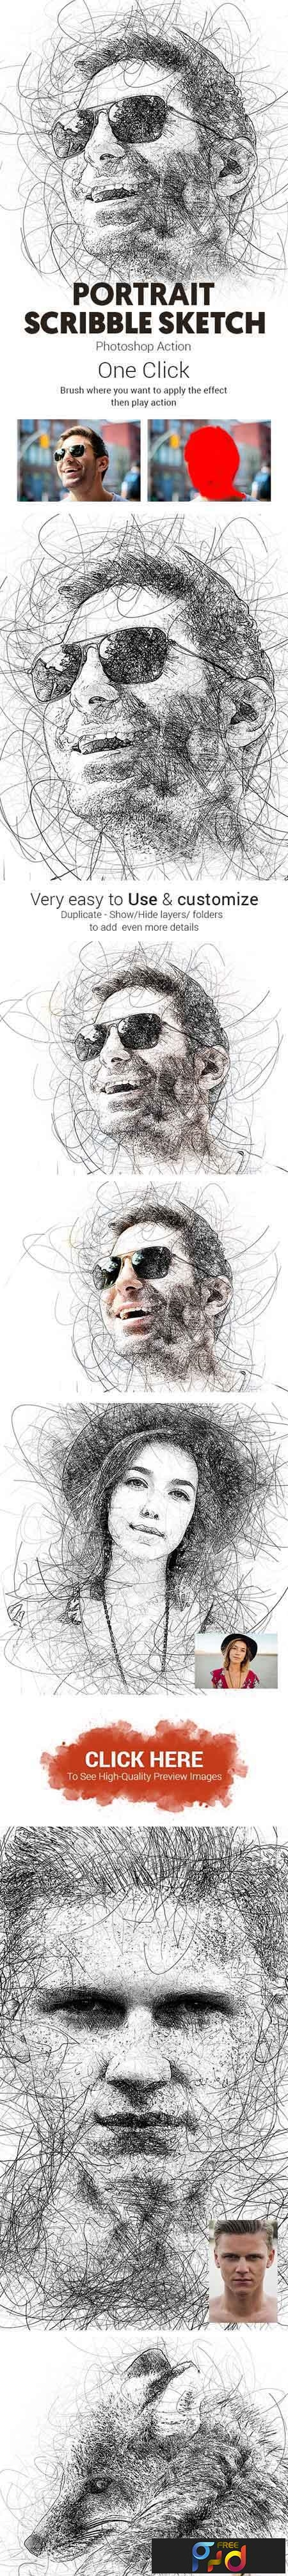 Portrait Scribble Sketch Art Photoshop Action 23191265 1